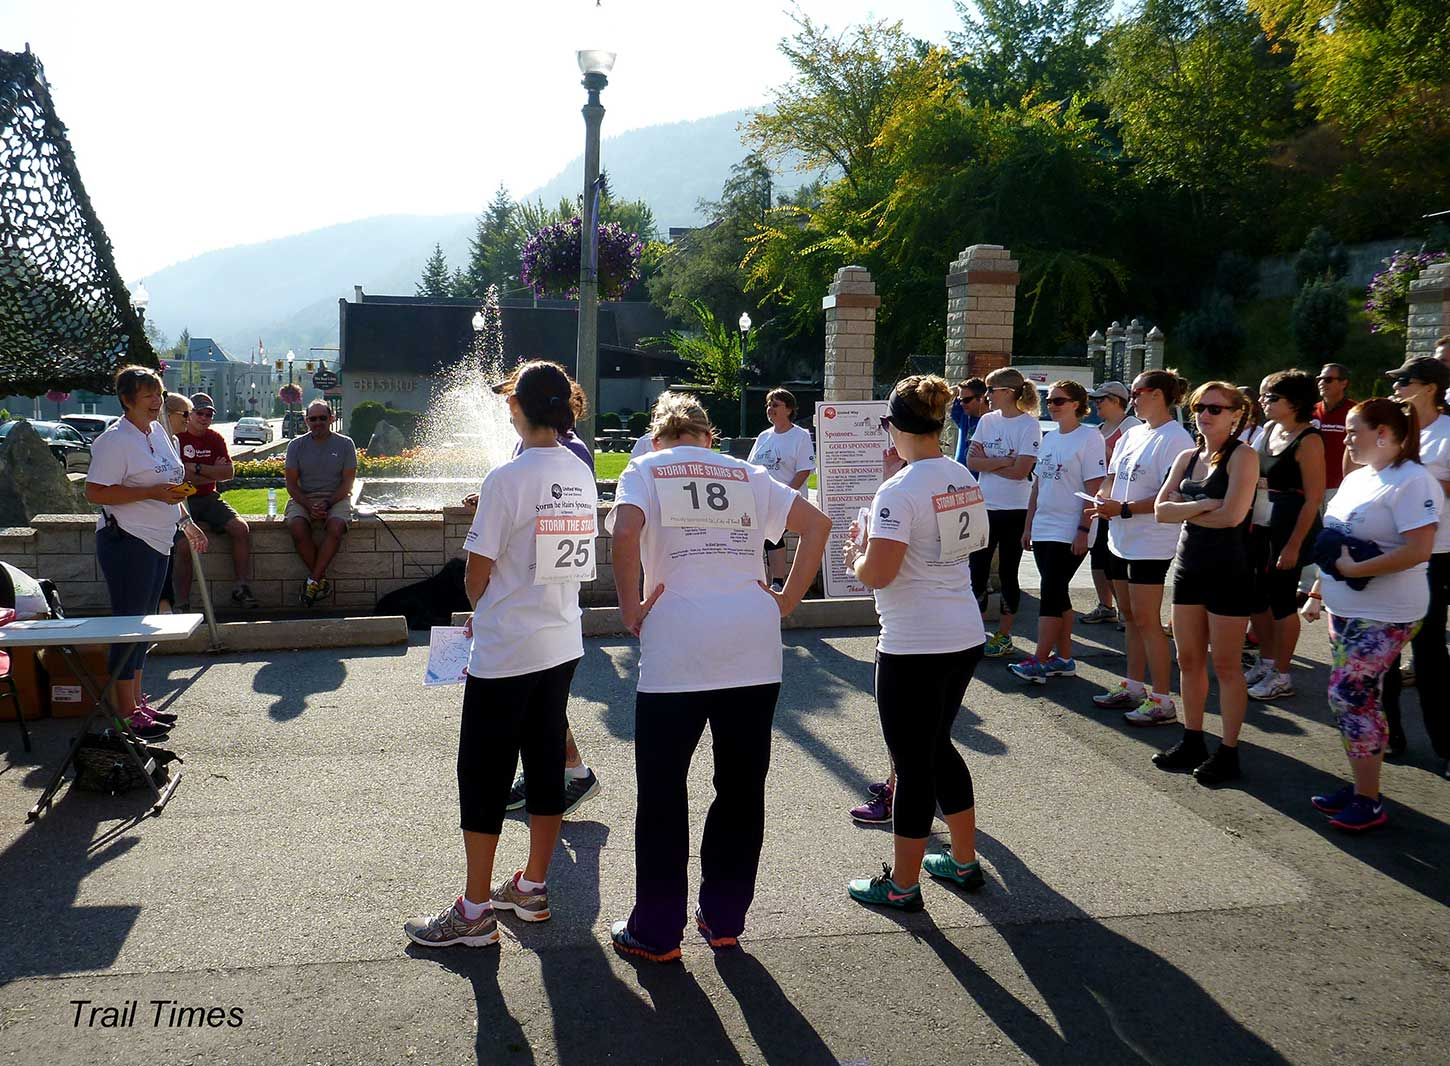 3 people with race numbers on their backs stand next to a fountain.